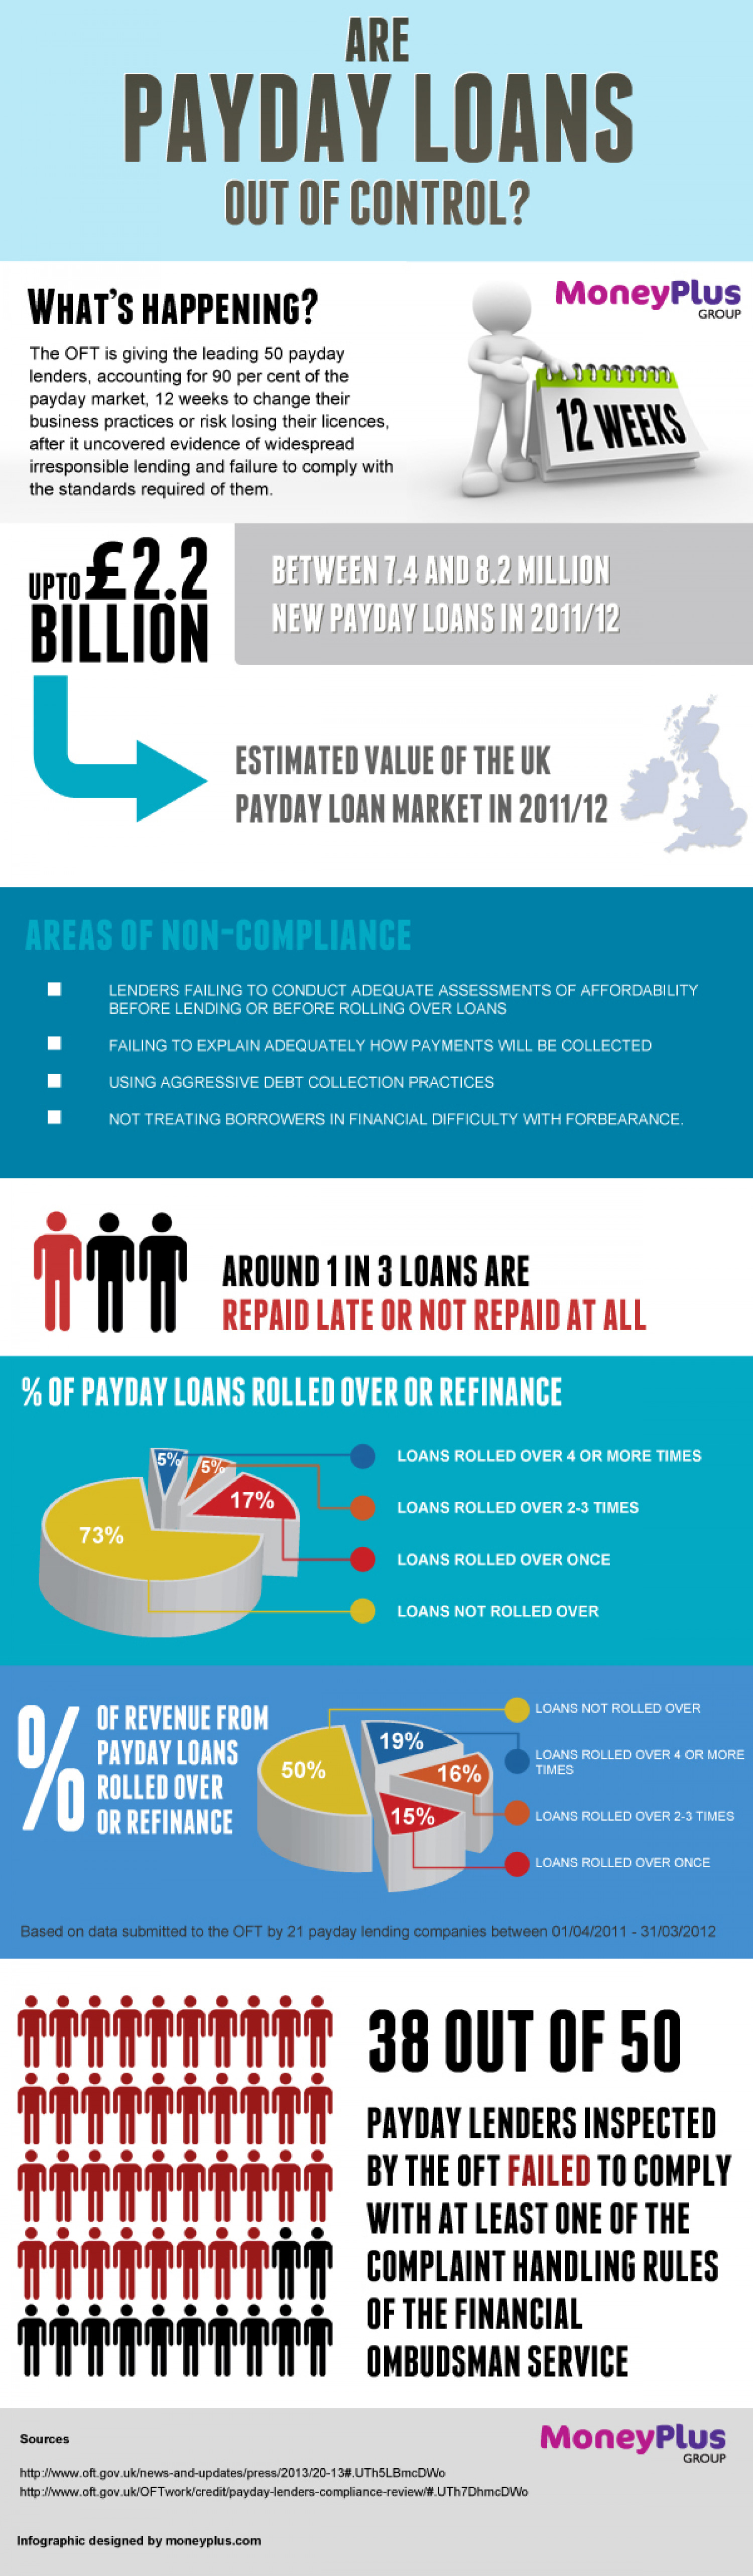 Are Payday Loans Out Of Control? Infographic